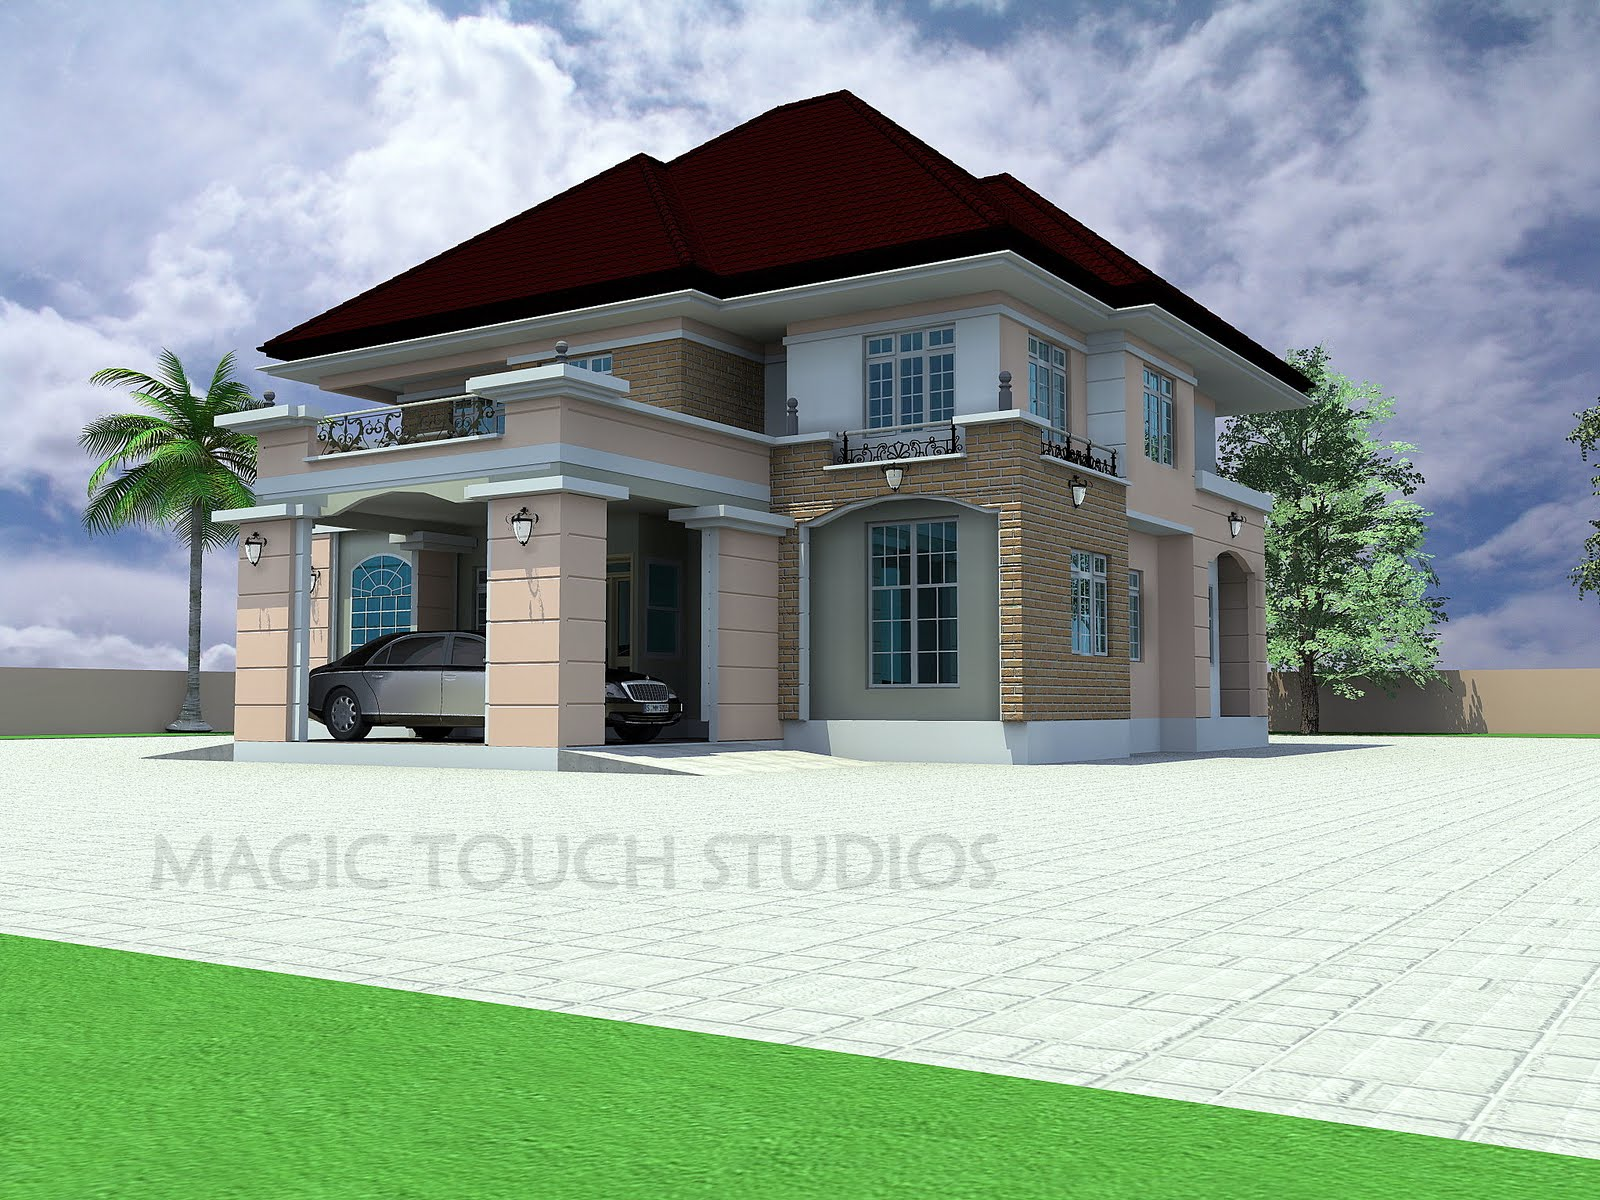 5 bedroom duplex for 5 bedroom duplex